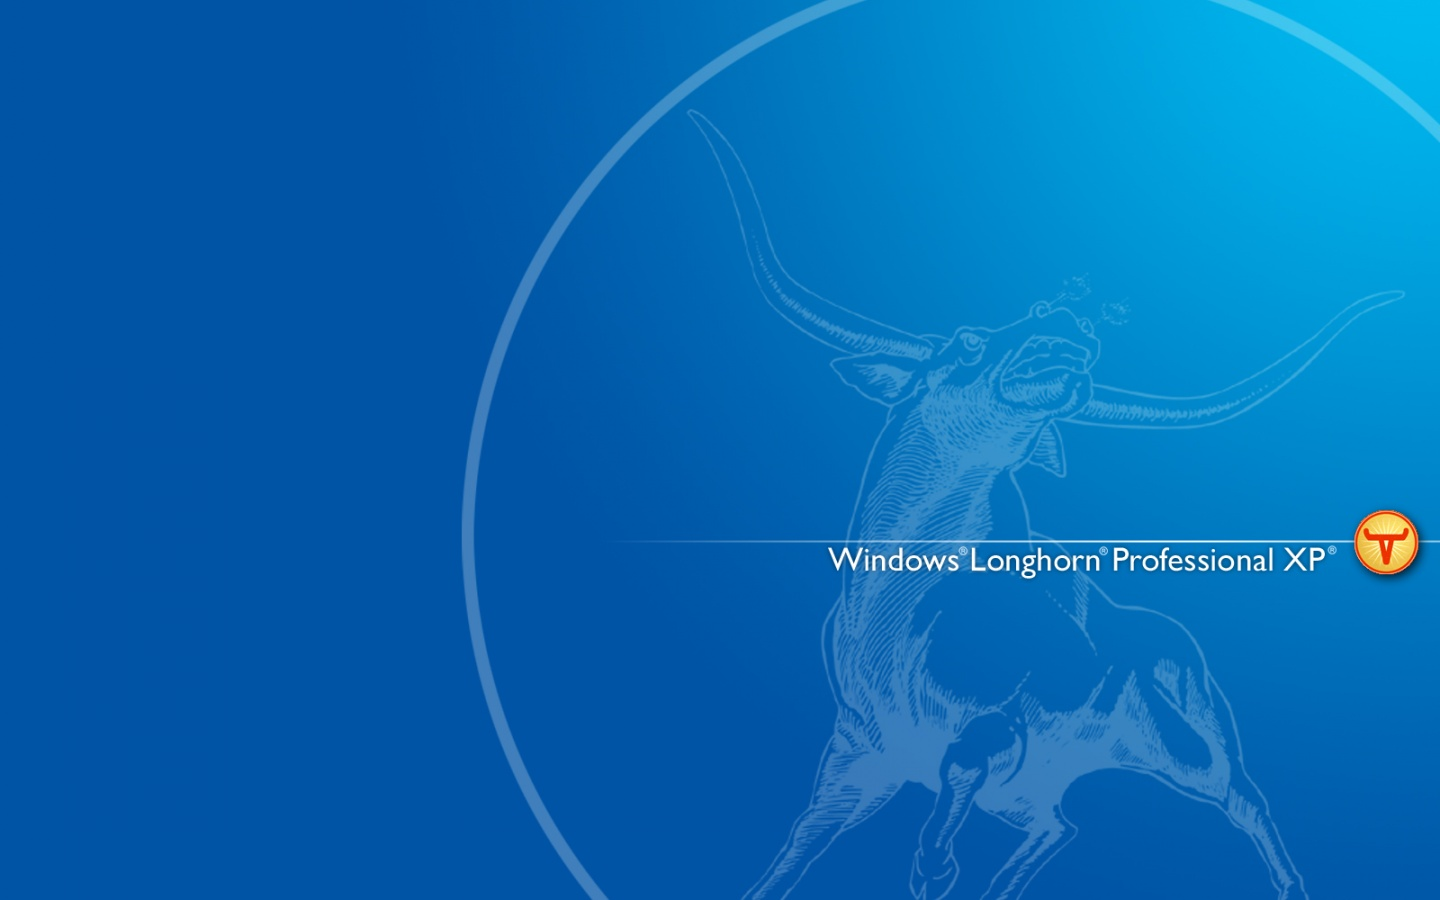 1440x900 Classic Longhorn desktop PC and Mac wallpaper 1440x900